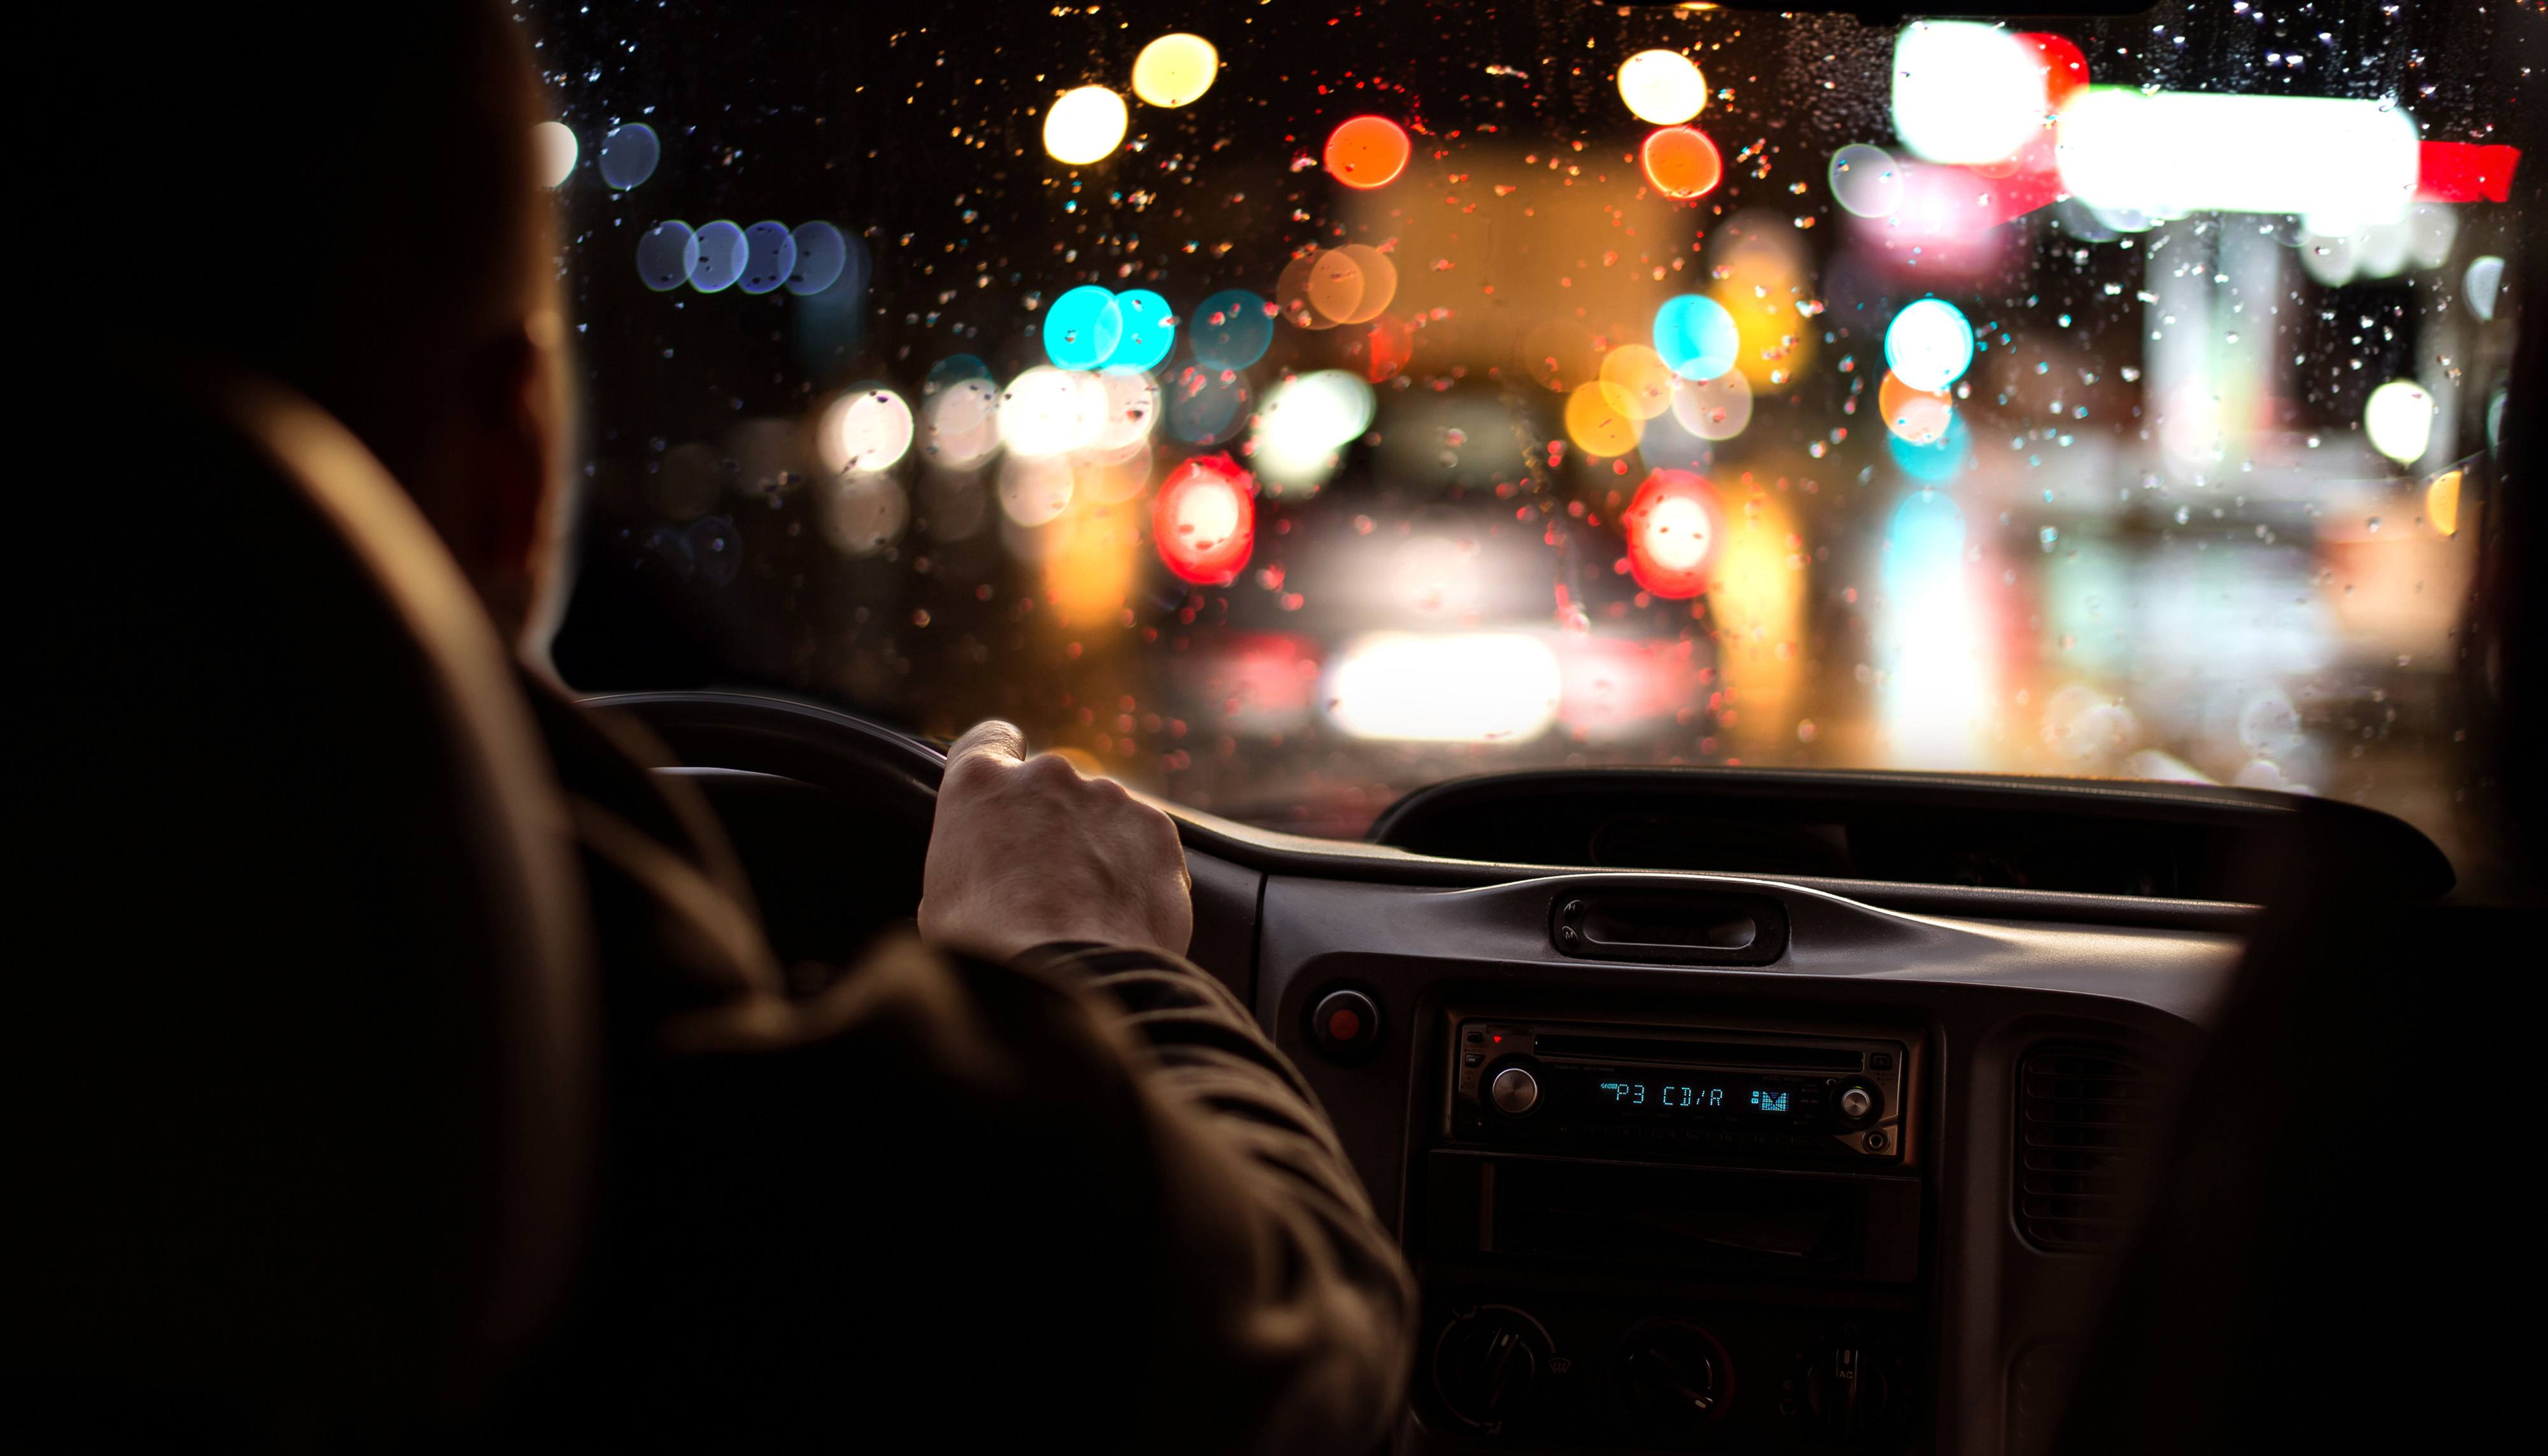 Driving at night, safely